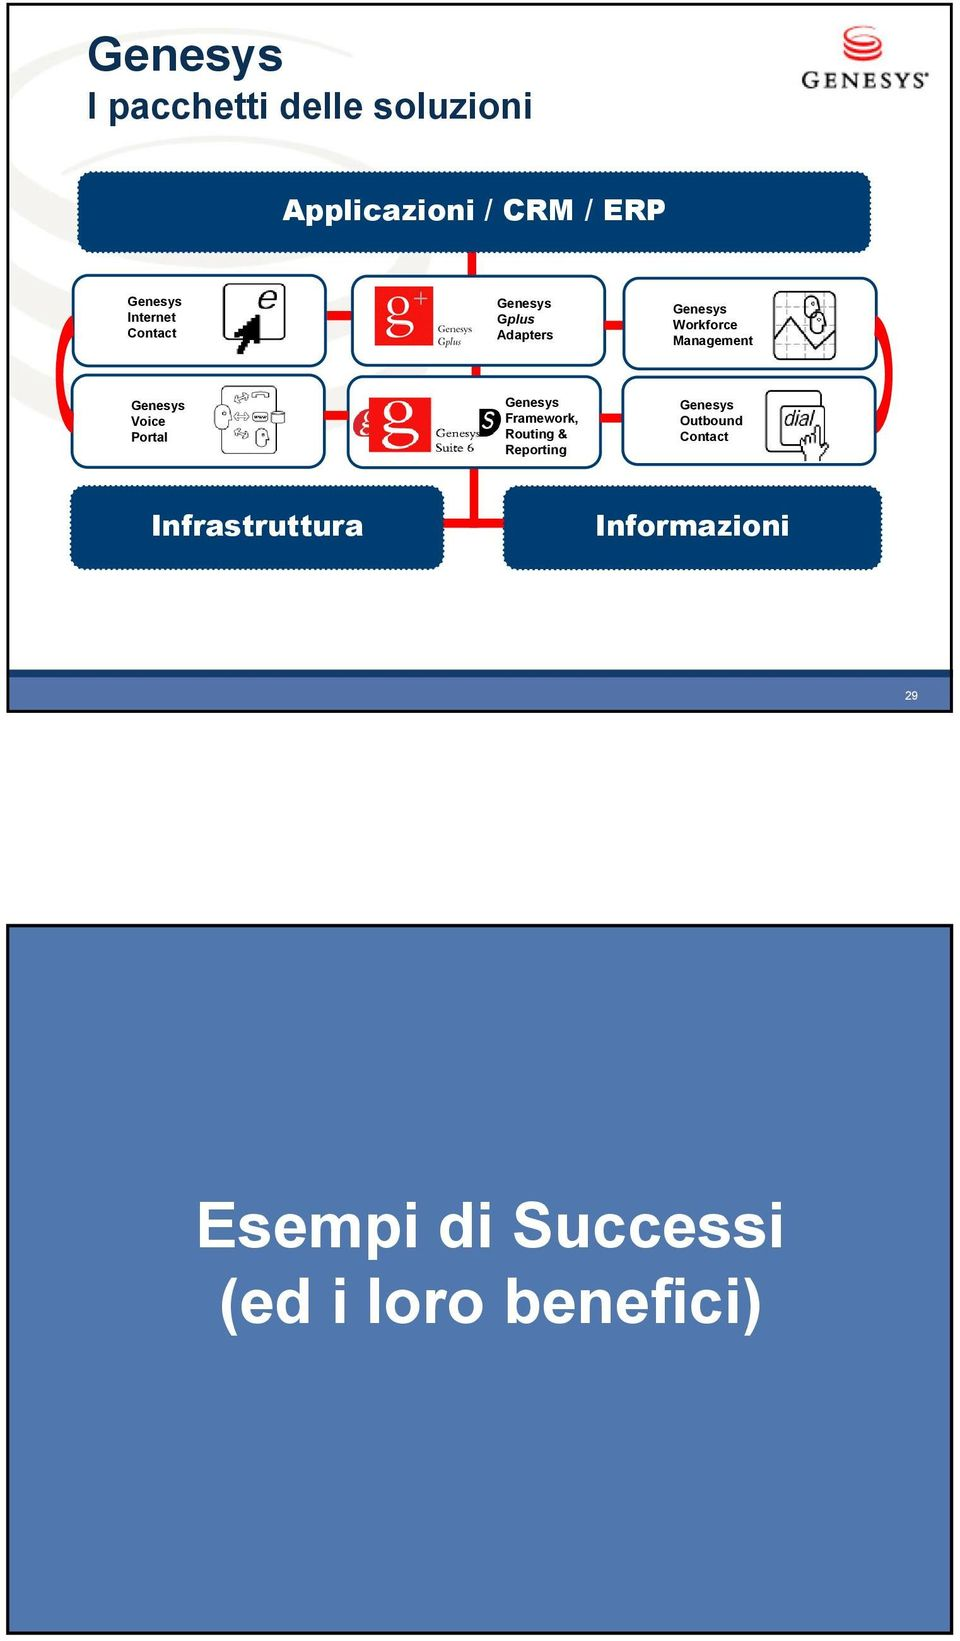 Self Service Genesys Voice Portal Computer Telephony Integration Genesys Framework, Routing & Reporting